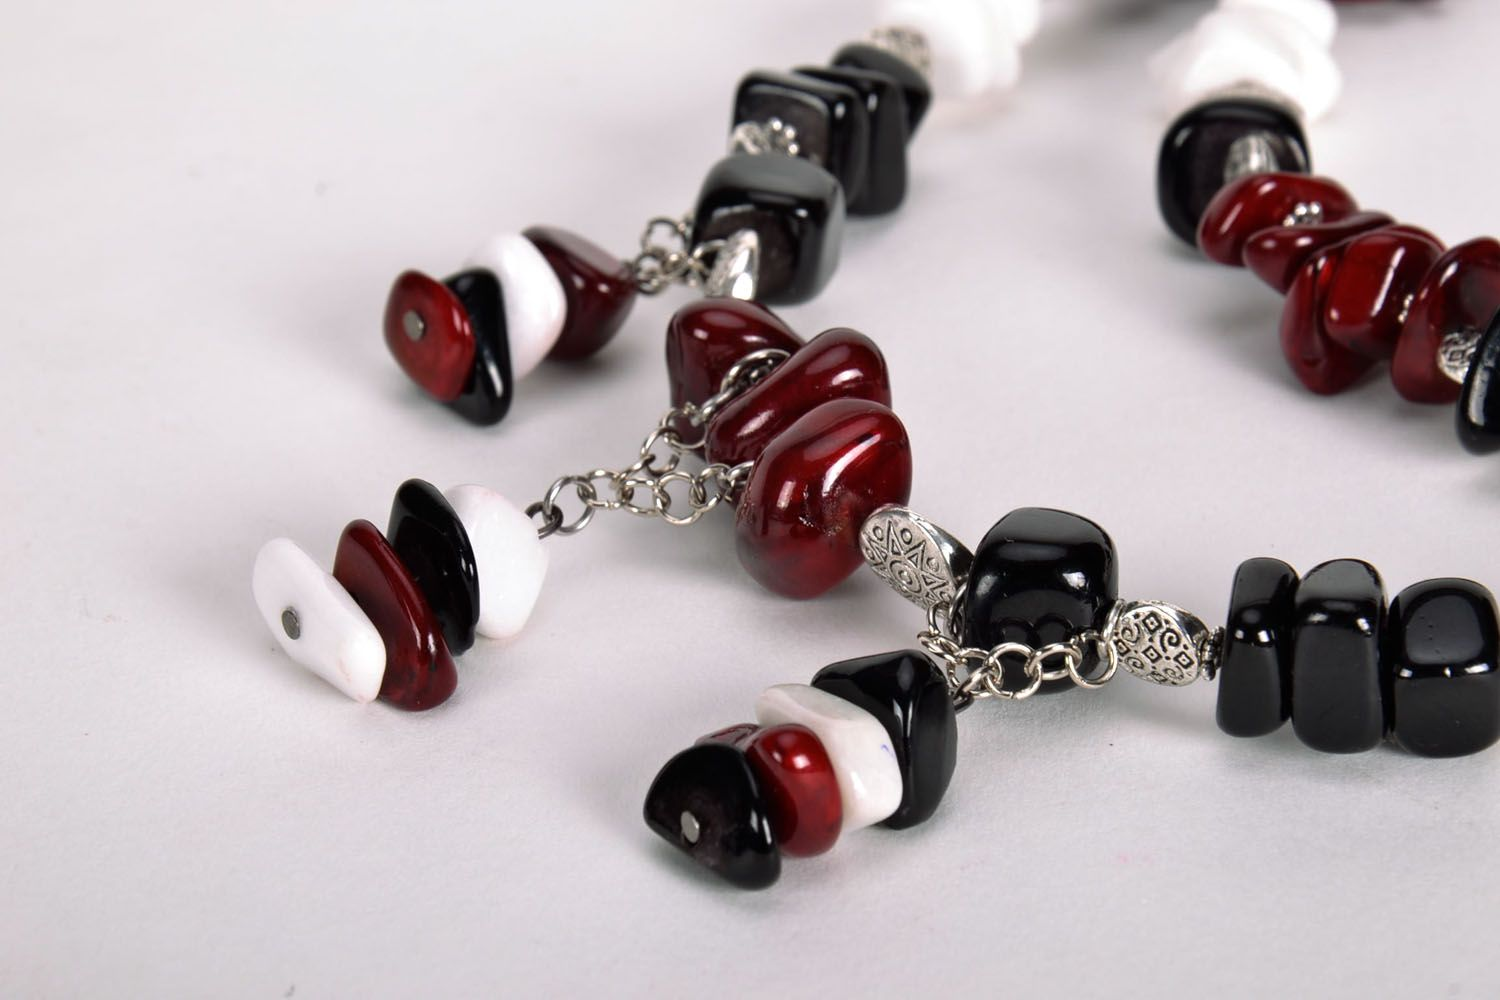 Homemade bead necklace with natural stones photo 4